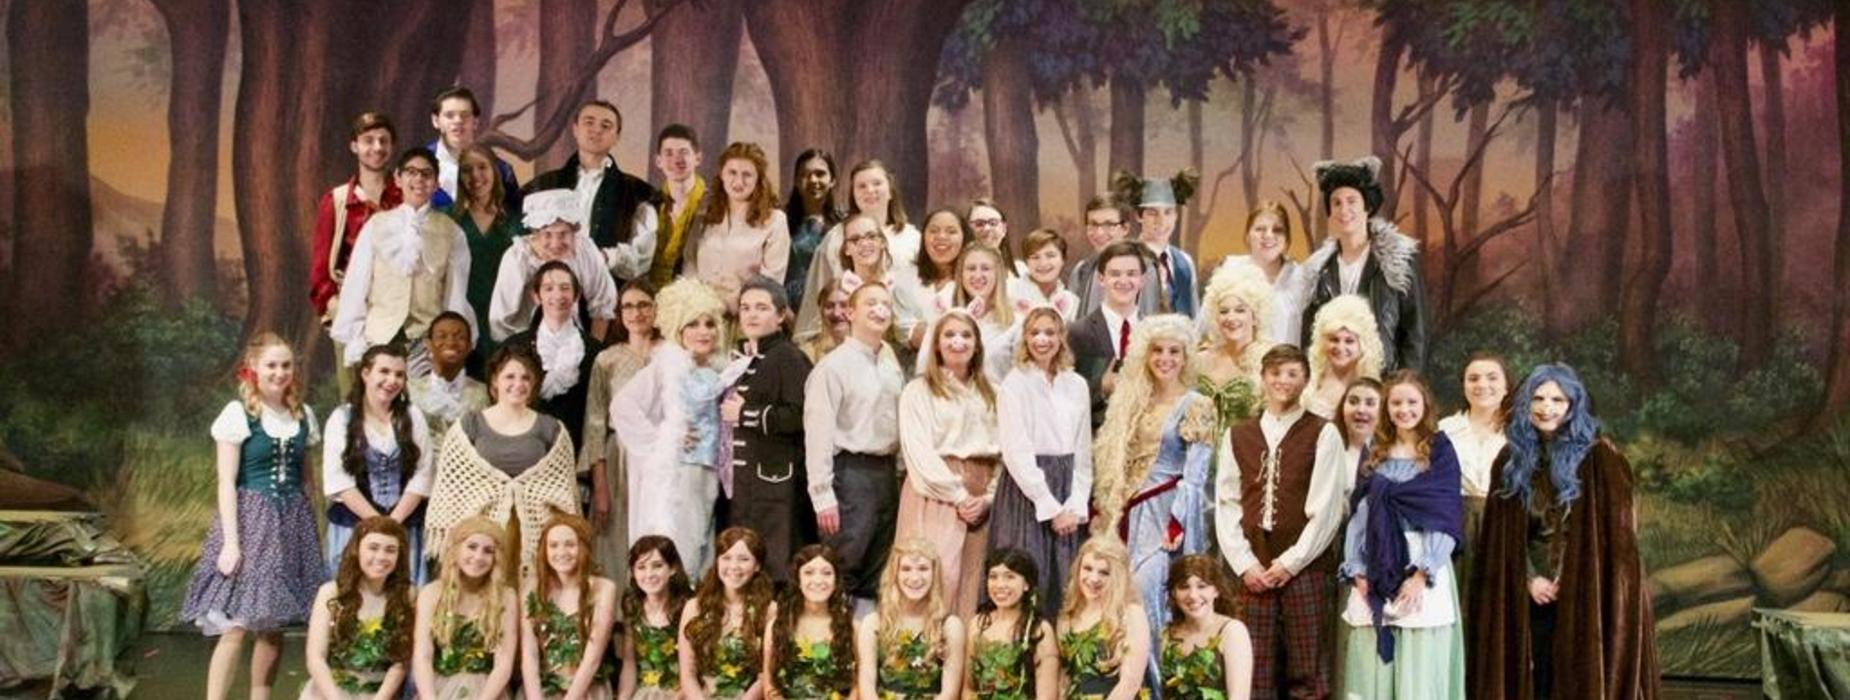 Into the Woods Cast Picture